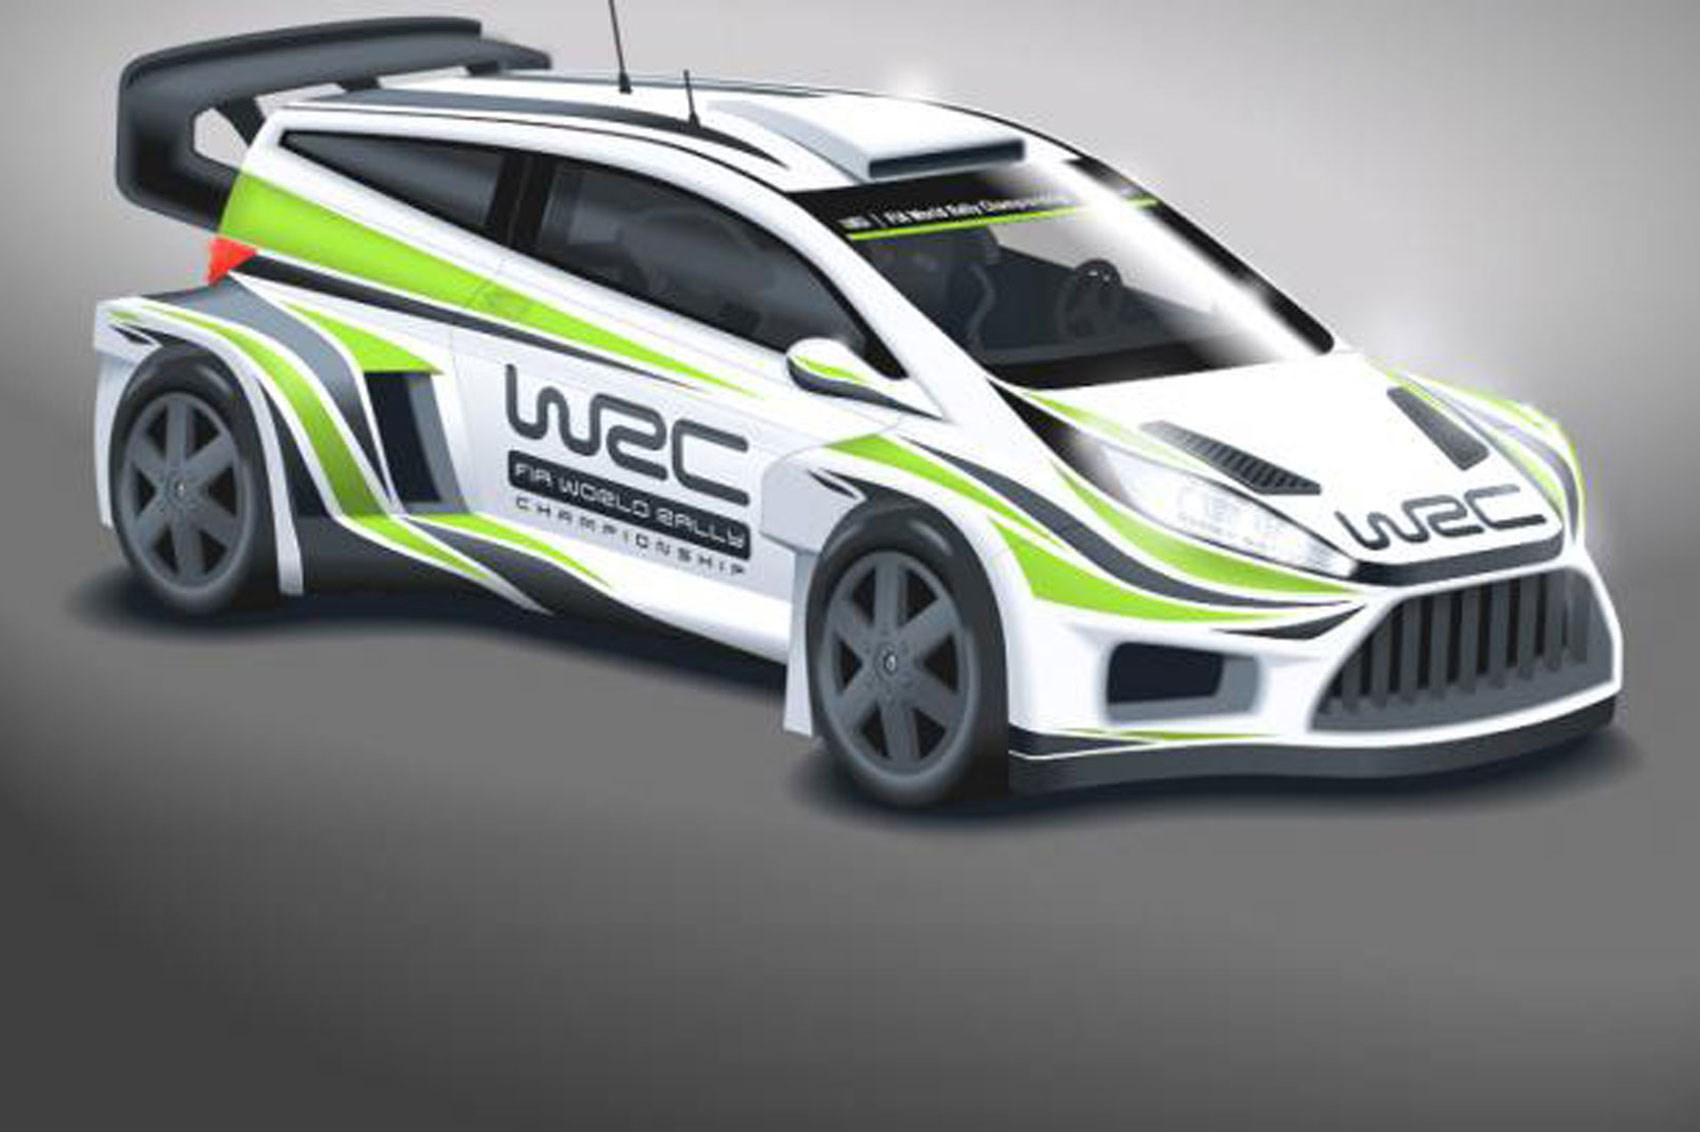 Ultrablogus  Splendid Wild New Look For Wrc Cars In  By Car Magazine With Handsome Wrc Cars Will Get Wider Bodies Bigger Wings And More Power For  With Alluring  Honda Accord Interior Lights Also  Chevelle Interior In Addition M Red Interior And  Kia Optima Lx Interior As Well As  Toyota Pickup Interior Additionally Bmw Cinnamon Interior From Carmagazinecouk With Ultrablogus  Handsome Wild New Look For Wrc Cars In  By Car Magazine With Alluring Wrc Cars Will Get Wider Bodies Bigger Wings And More Power For  And Splendid  Honda Accord Interior Lights Also  Chevelle Interior In Addition M Red Interior From Carmagazinecouk